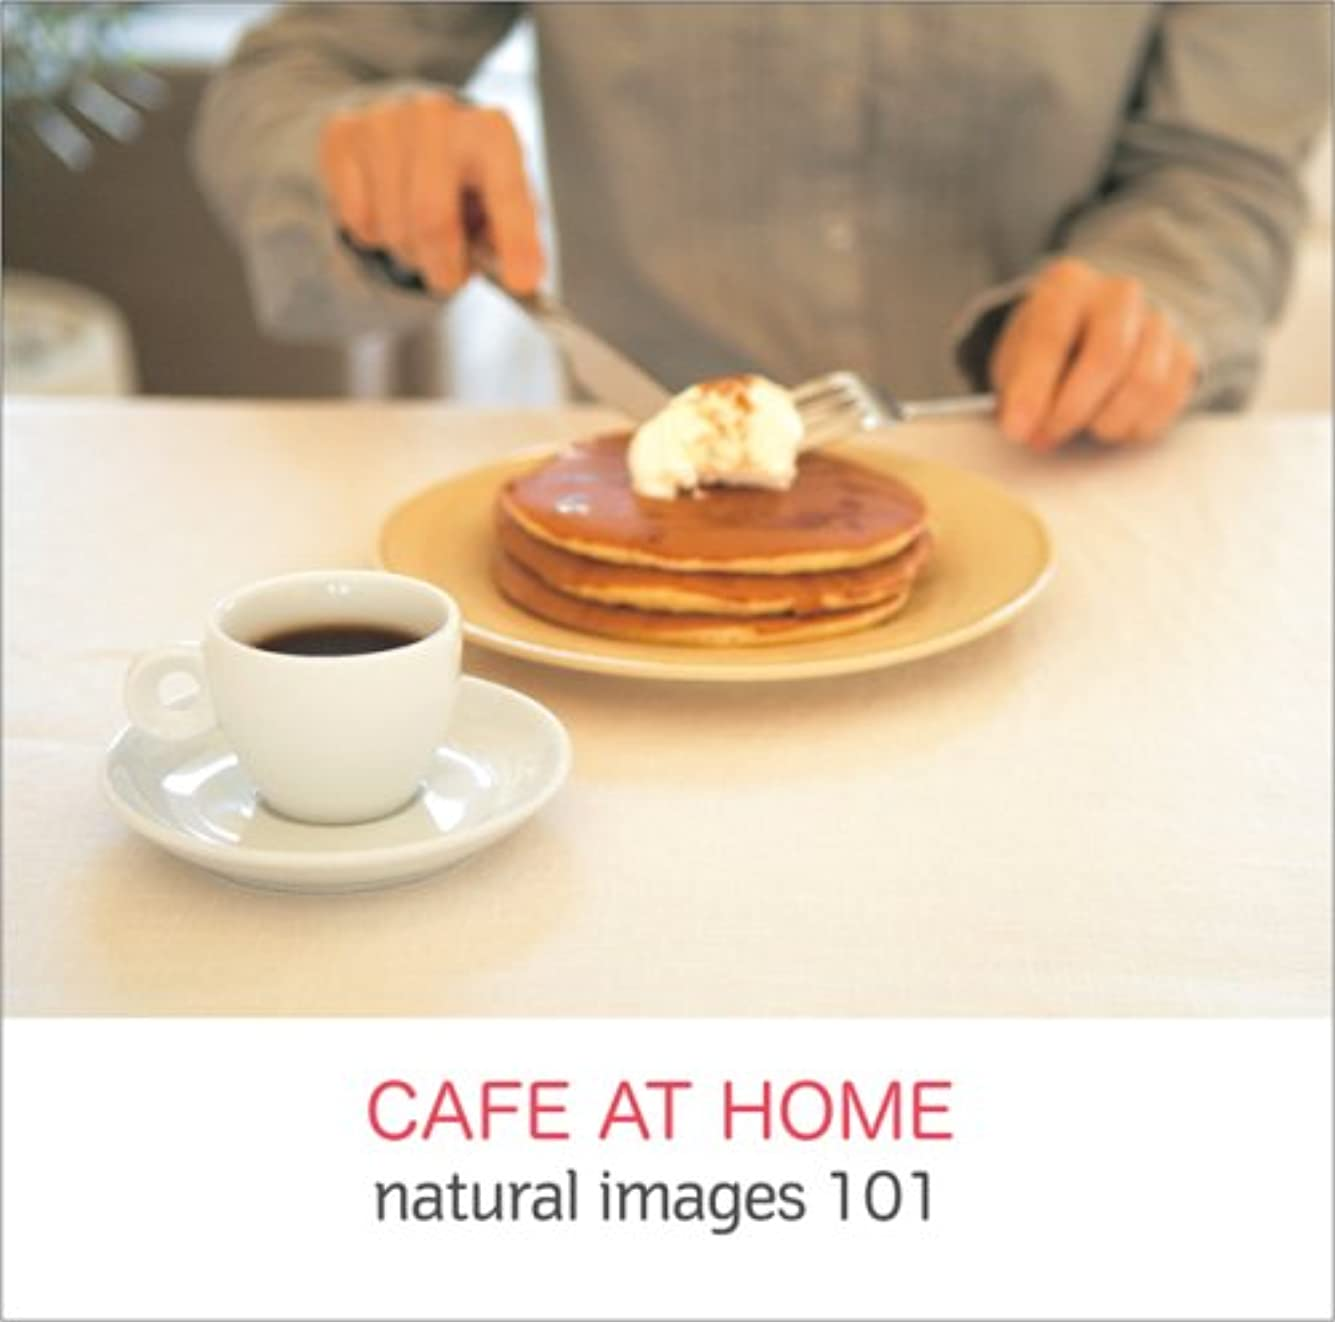 natural images Vol.101 CAFE AT HOME